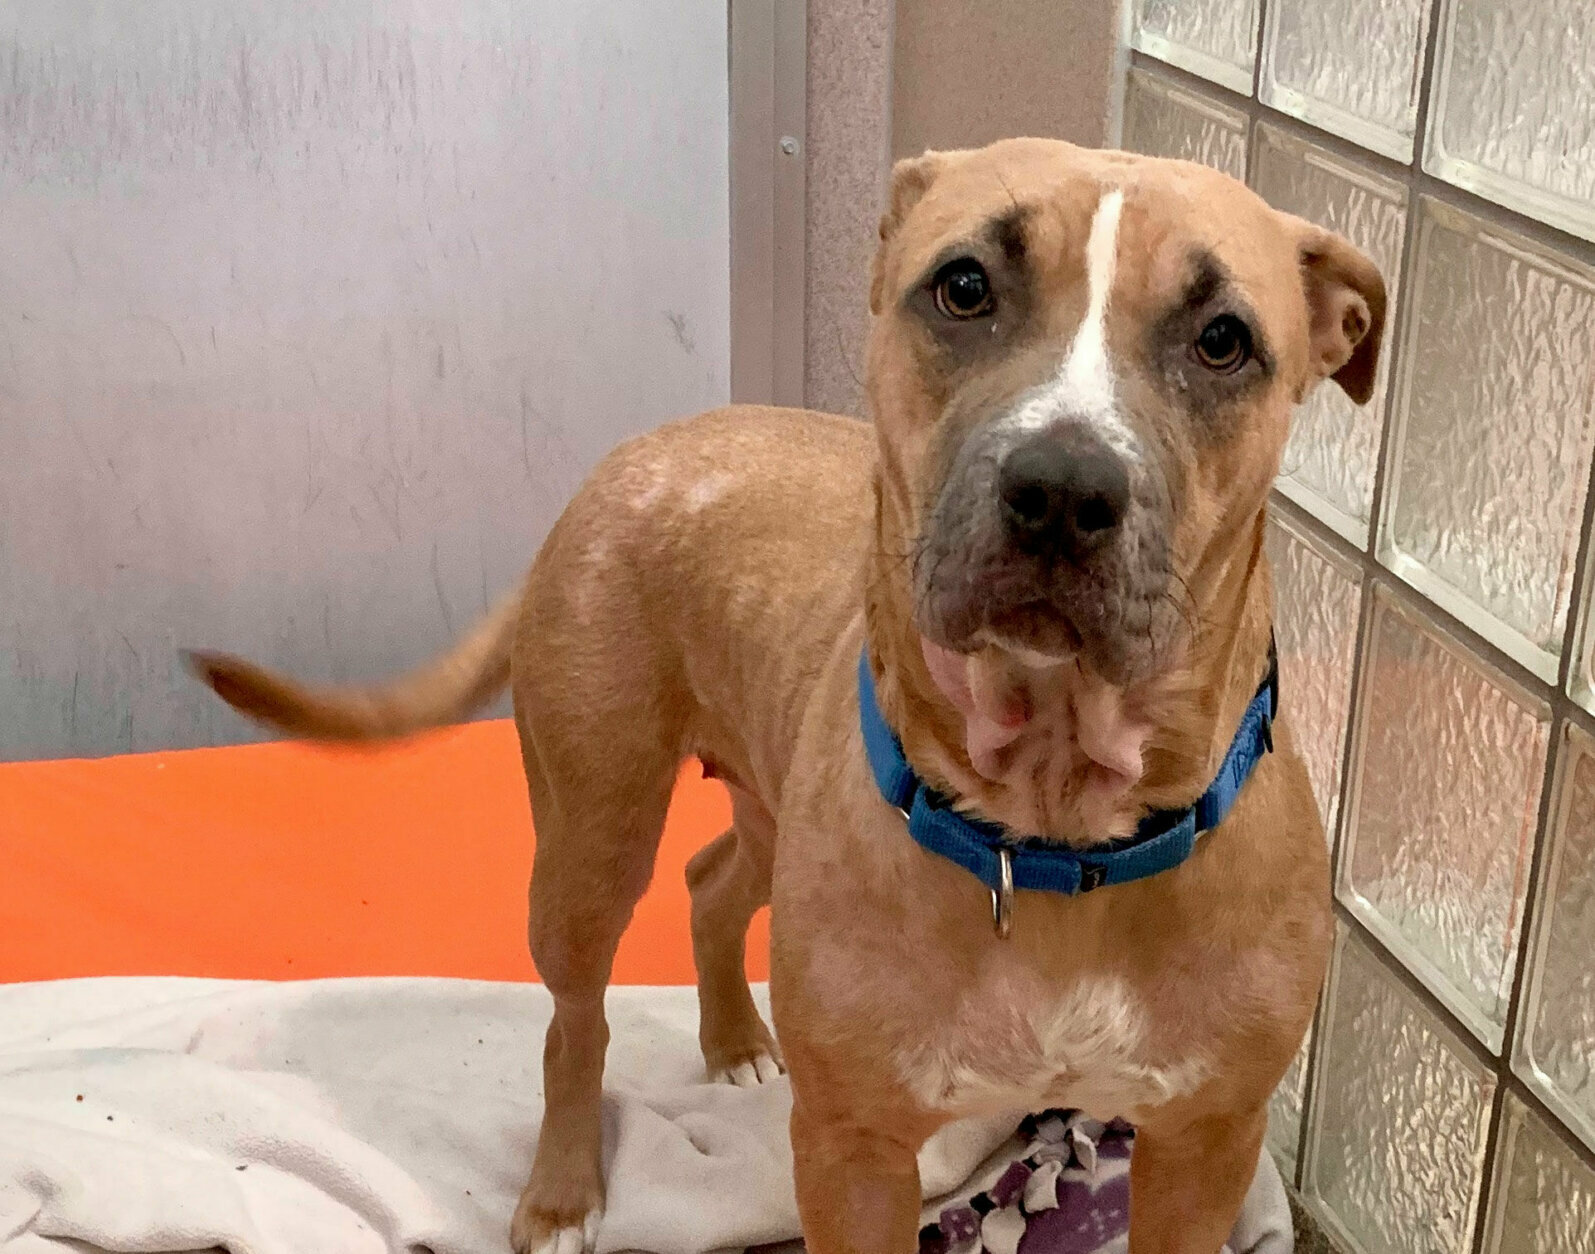 <p><strong>Pet of the Week: Jasmine</strong></p> <p>Jasmine has been getting lots of love, treats and attention from the staff at Humane Rescue Alliance and is starting to come out of her shell. She would be best matched with a patient family, who can go slow and help her build up her confidence. She&#8217;s a quick learner, and once she gets comfortable, she&#8217;s sure to be a sweet princess with her favorite people!</p>